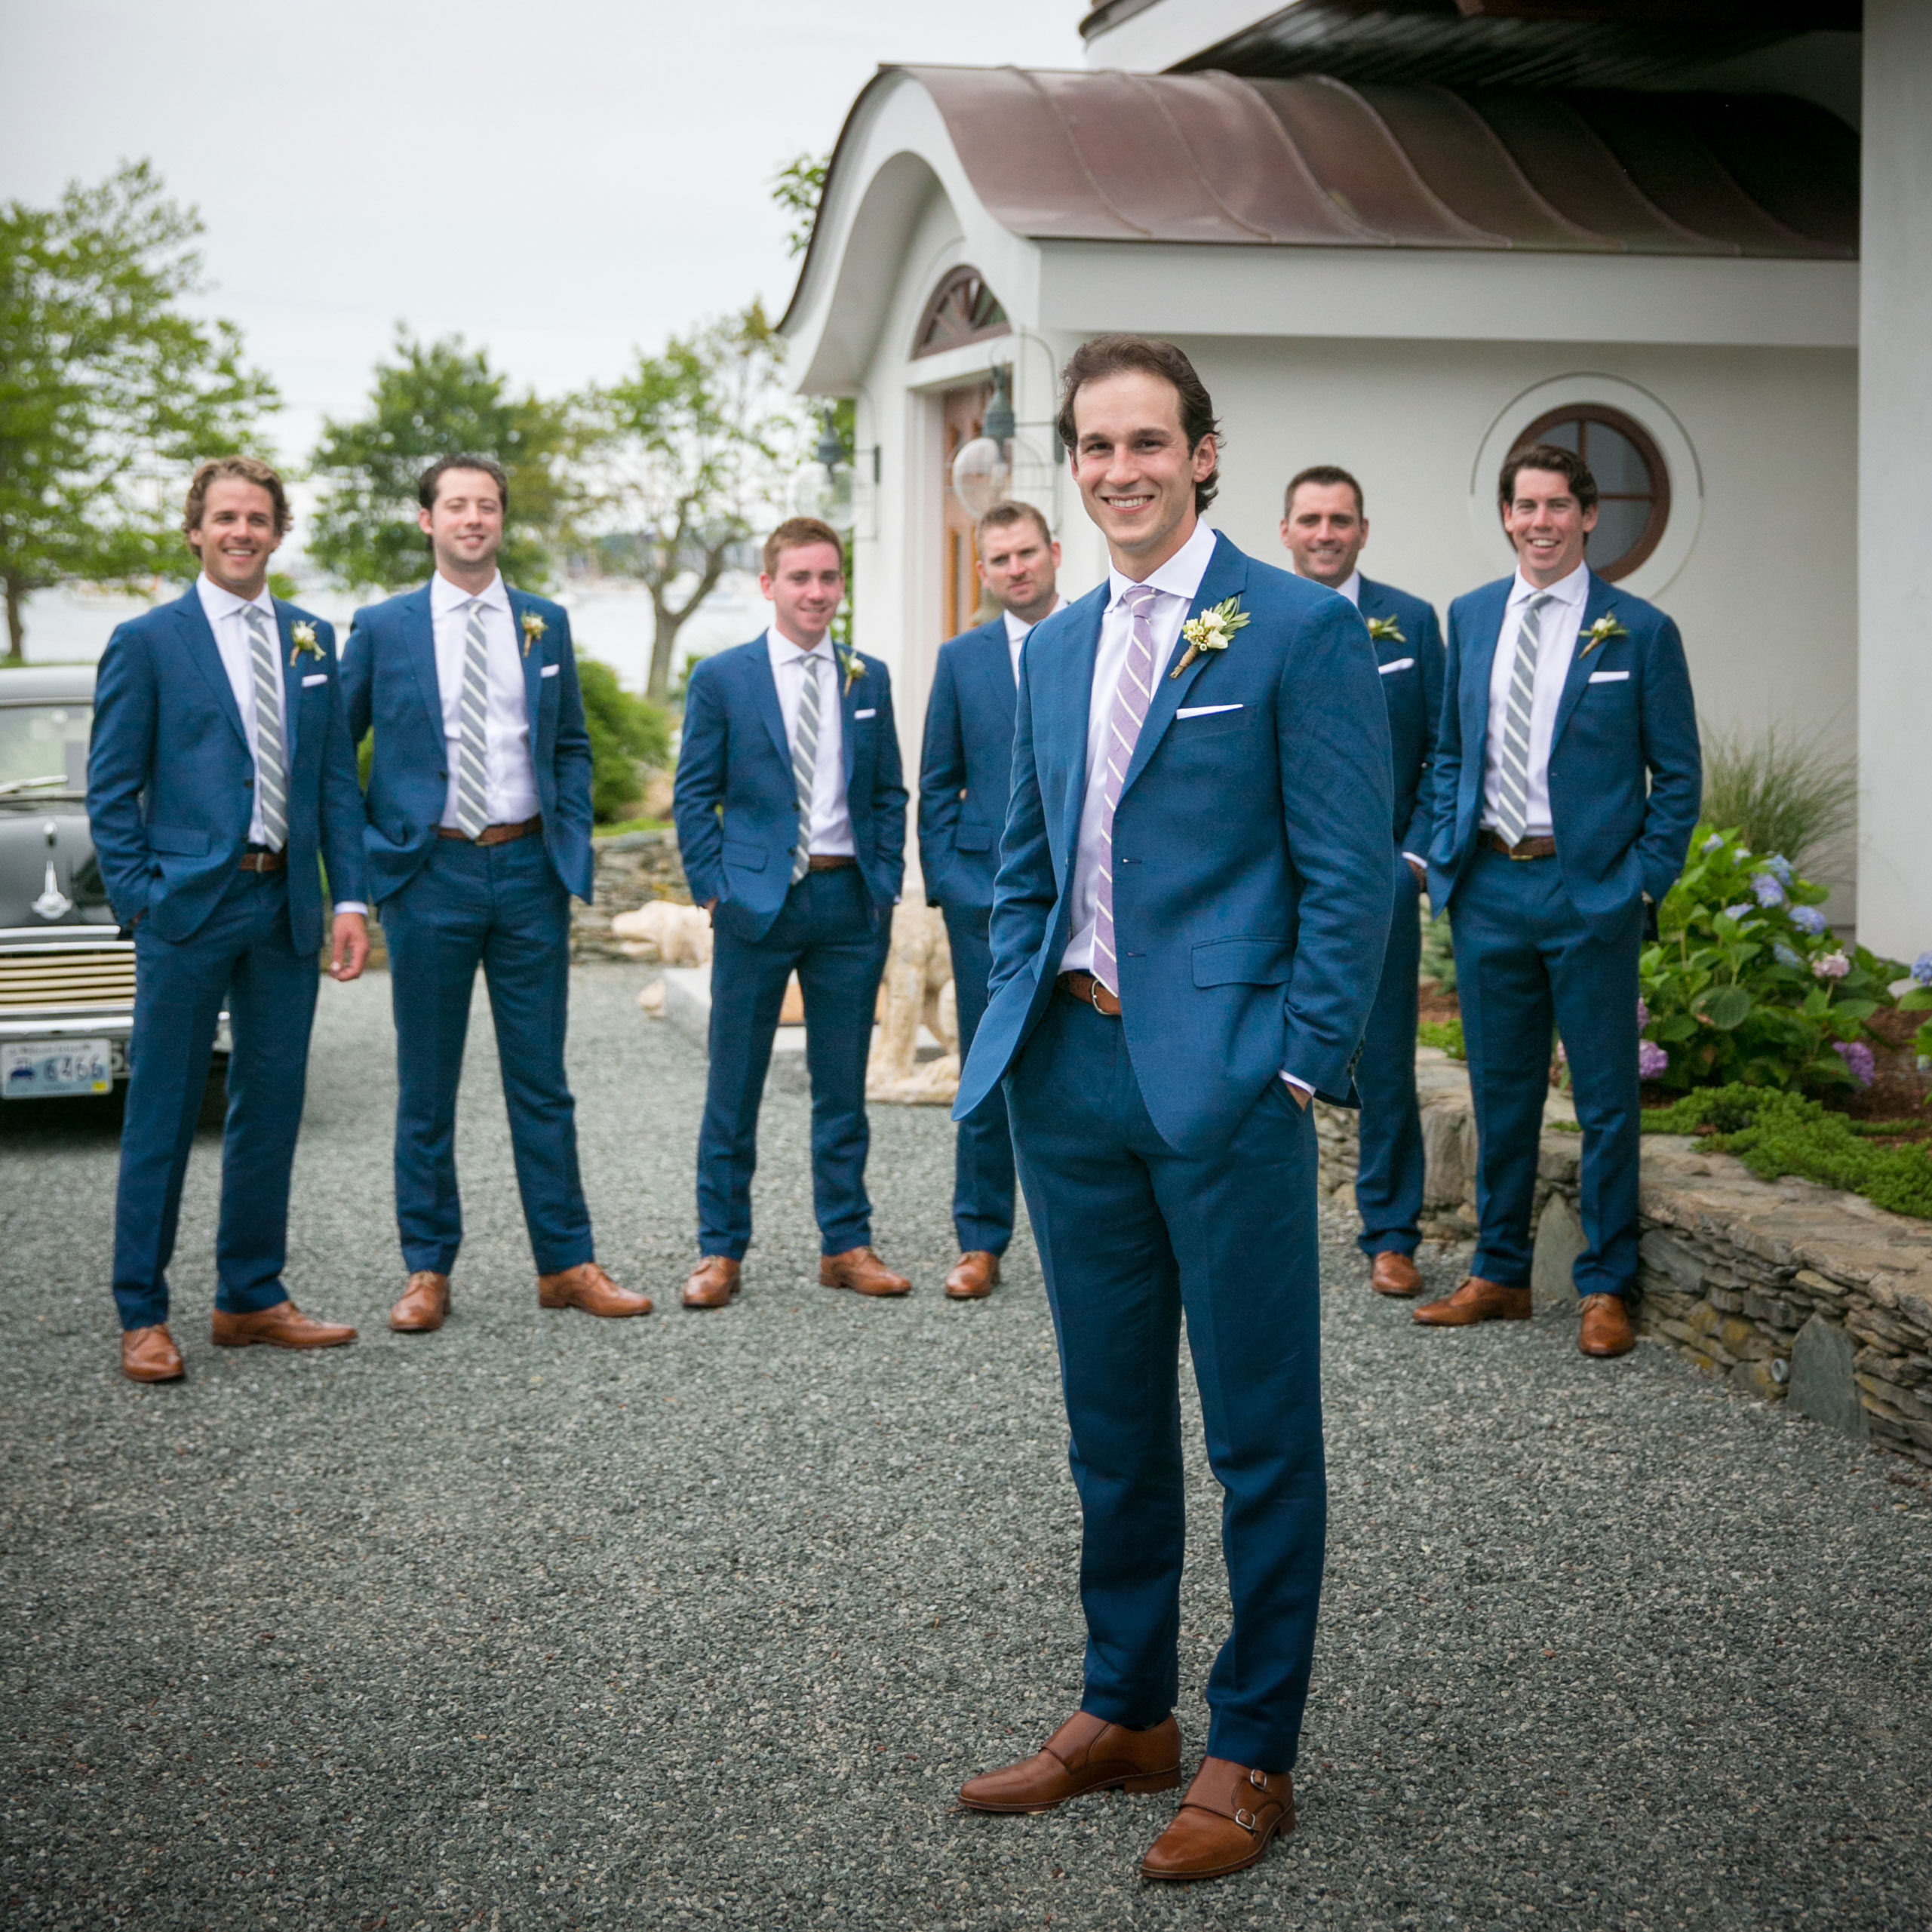 Groom Inspiration Bryce Harper S Navy Suit Inside Weddings